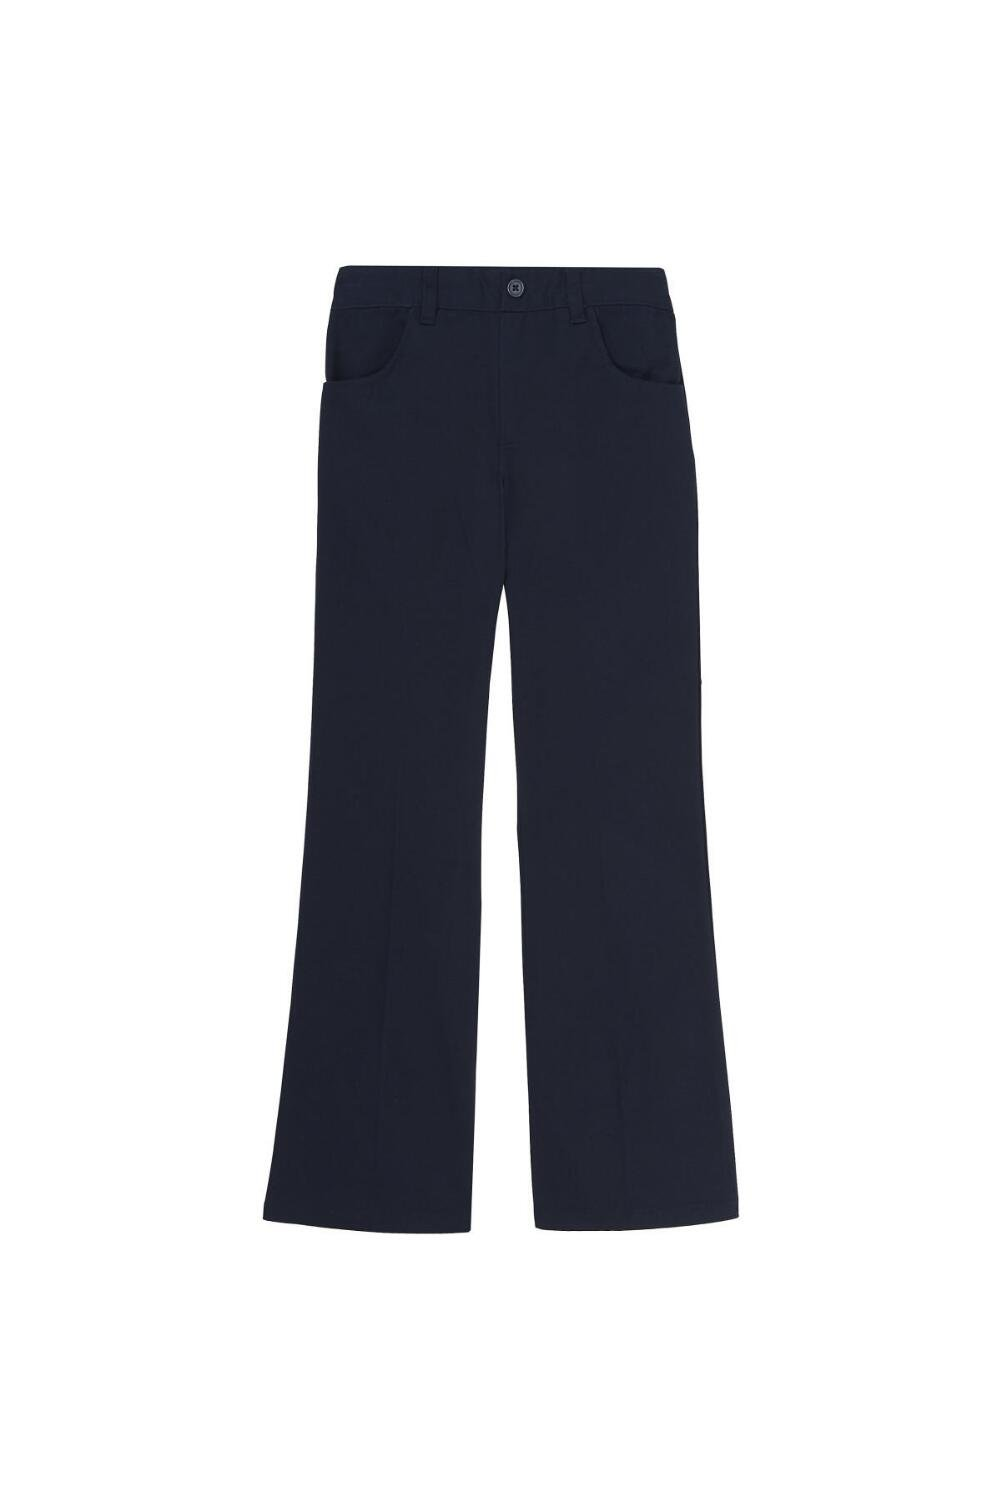 French Toast Little Girls' Pull-on Pant, Navy, 6